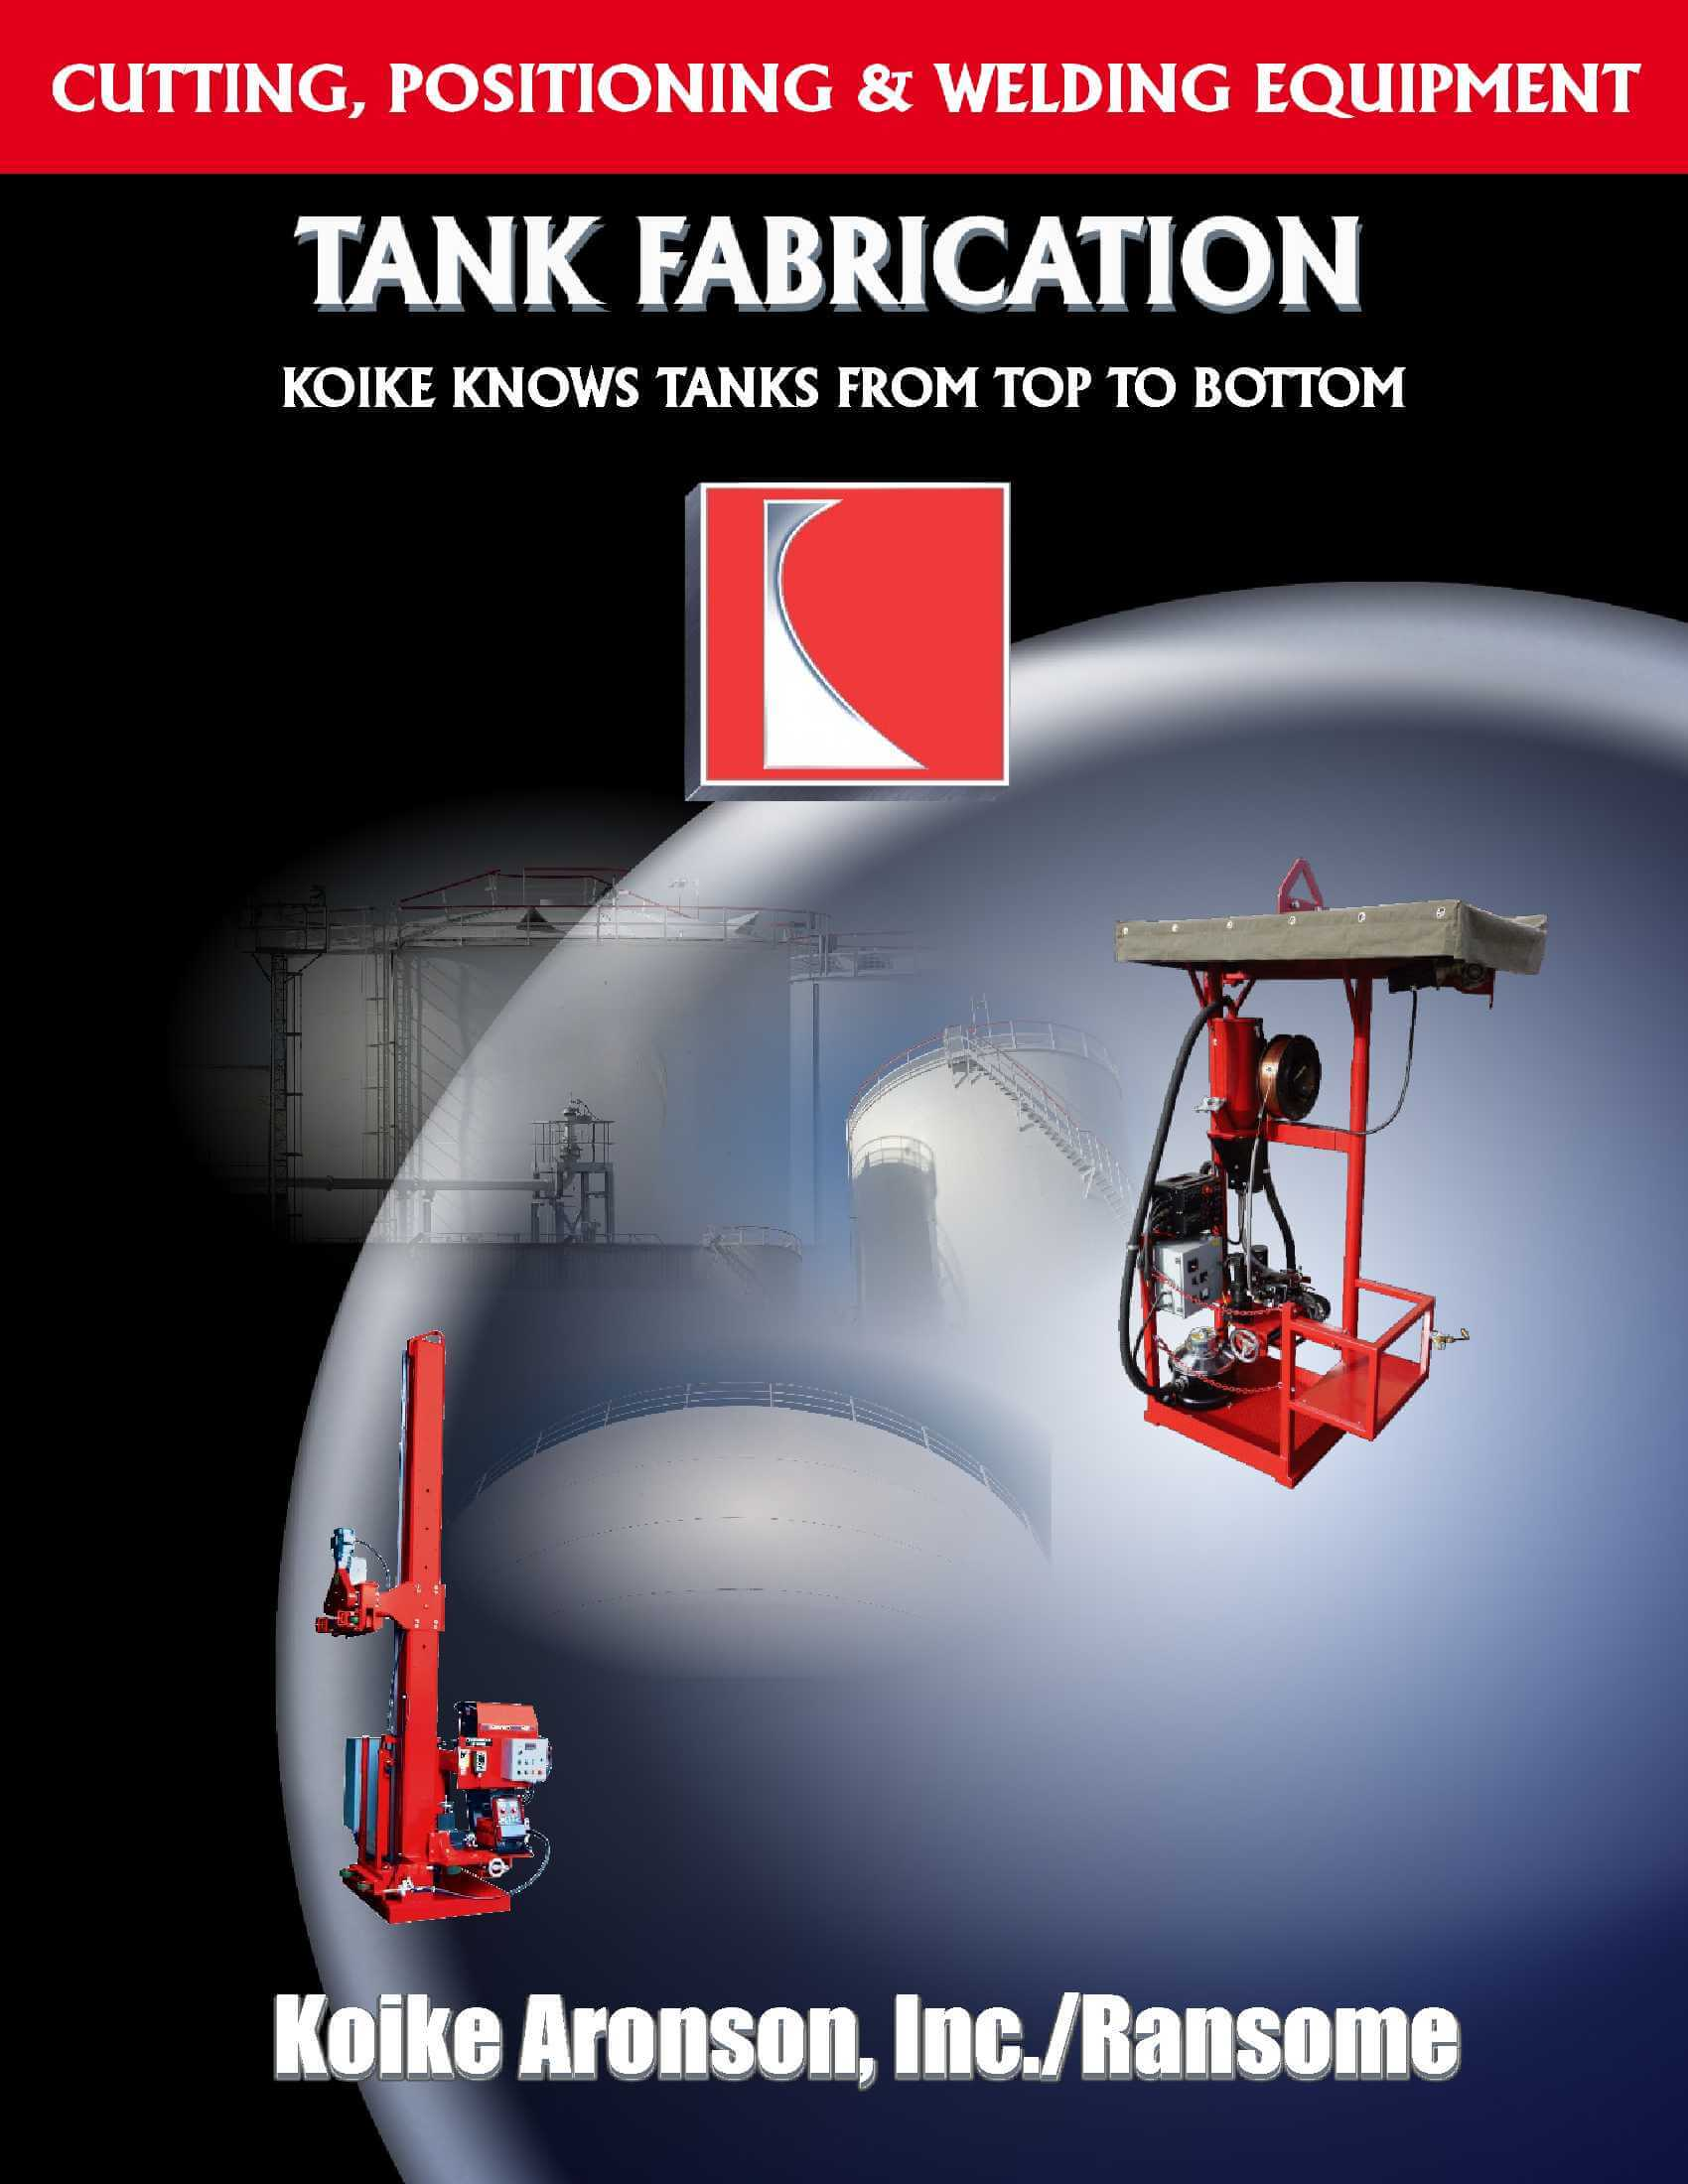 Tank Fabrication Product Brochure by Koike Aronson